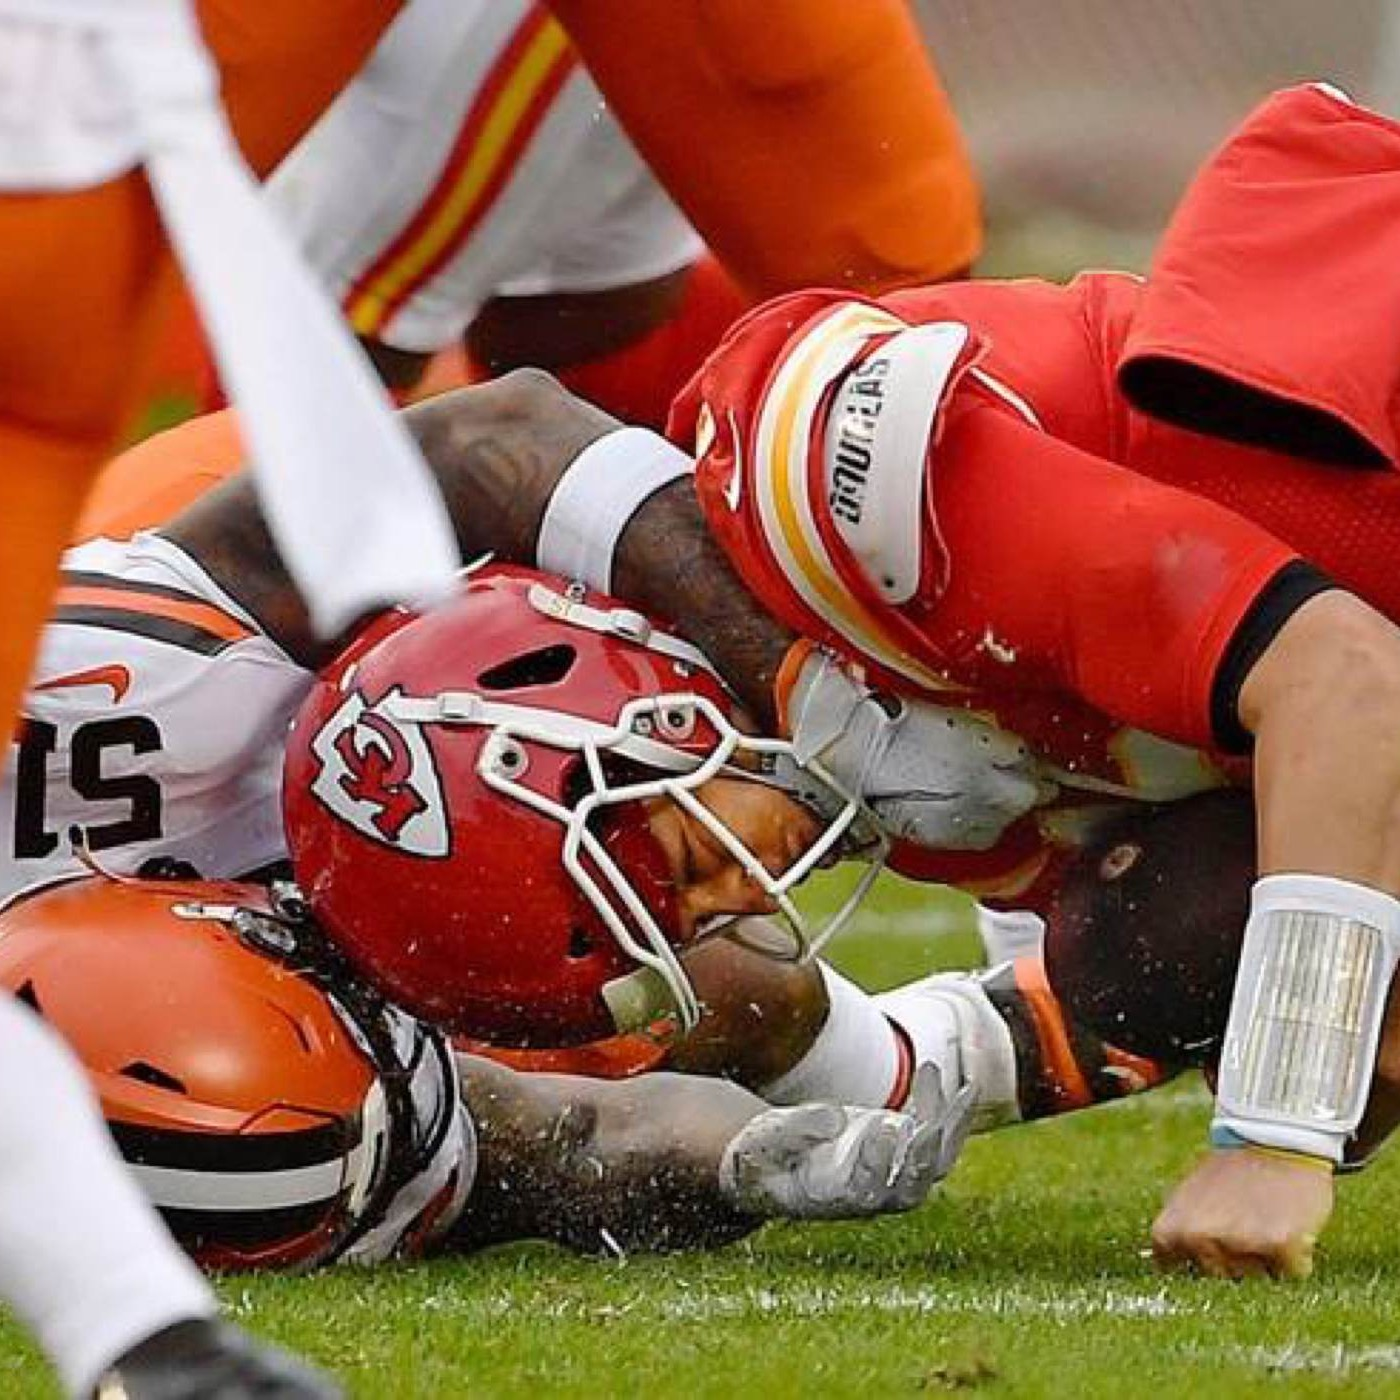 """Mahomes Injury Looking An Episode of """"House"""""""